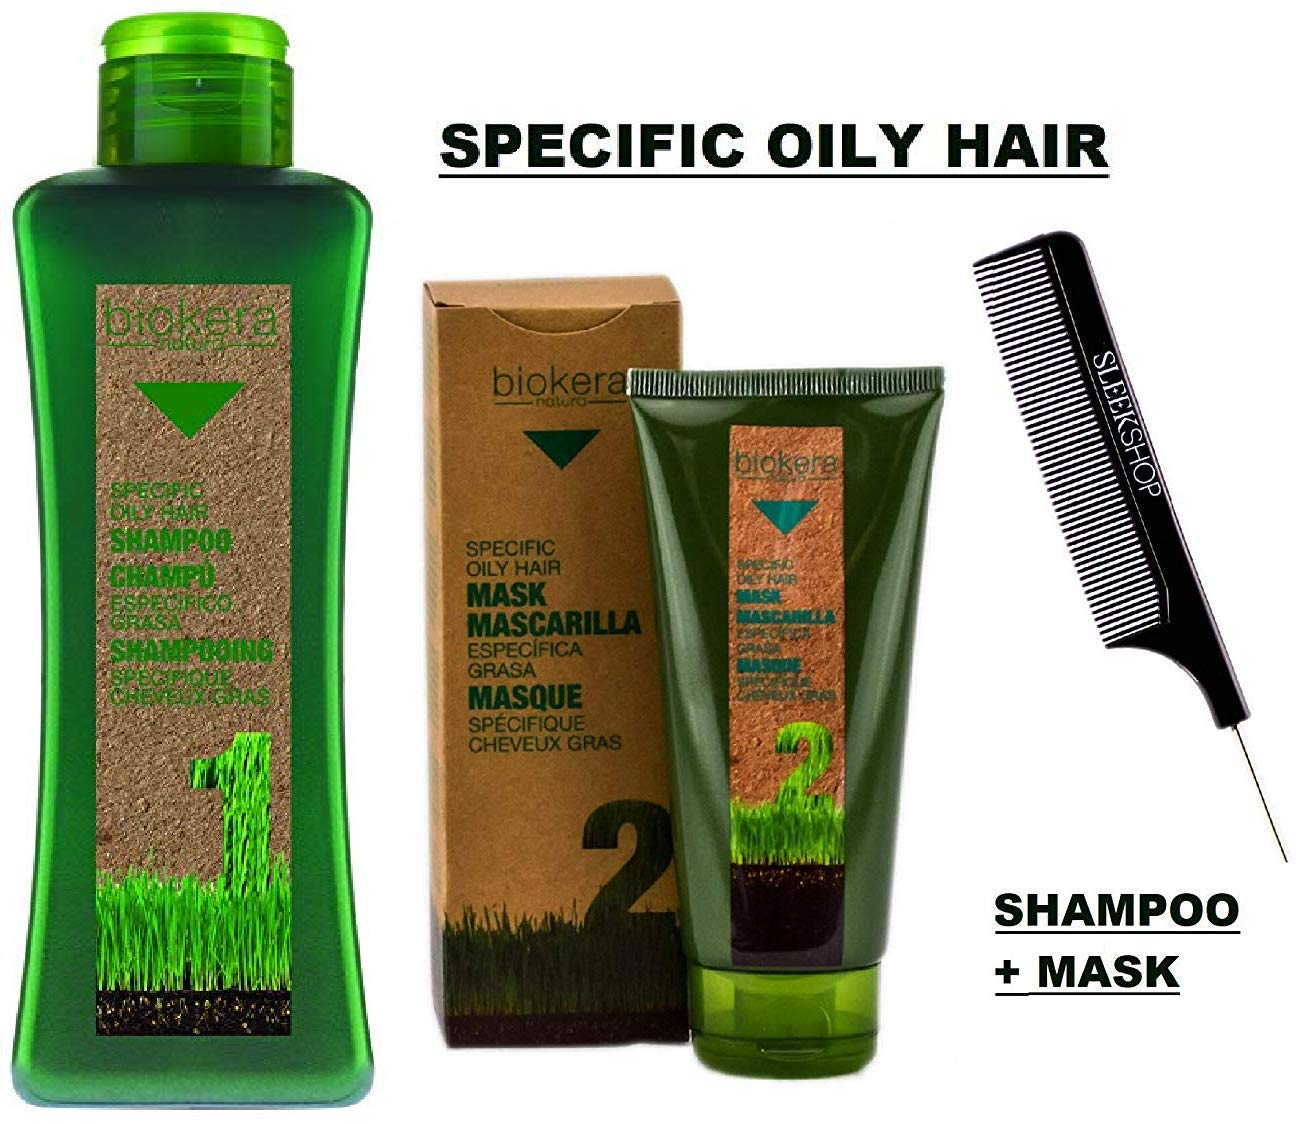 Salerm Biokera SPECIFIC OILY HAIR Shampoo & Conditioner Mask DUO SET, Regulates Oil Production, Excess Oiliness (W/Sleek Comb) Masque (1000 ml (36 oz) + 200 ml (6.9 oz) LARGE DUO KIT) by Salerm